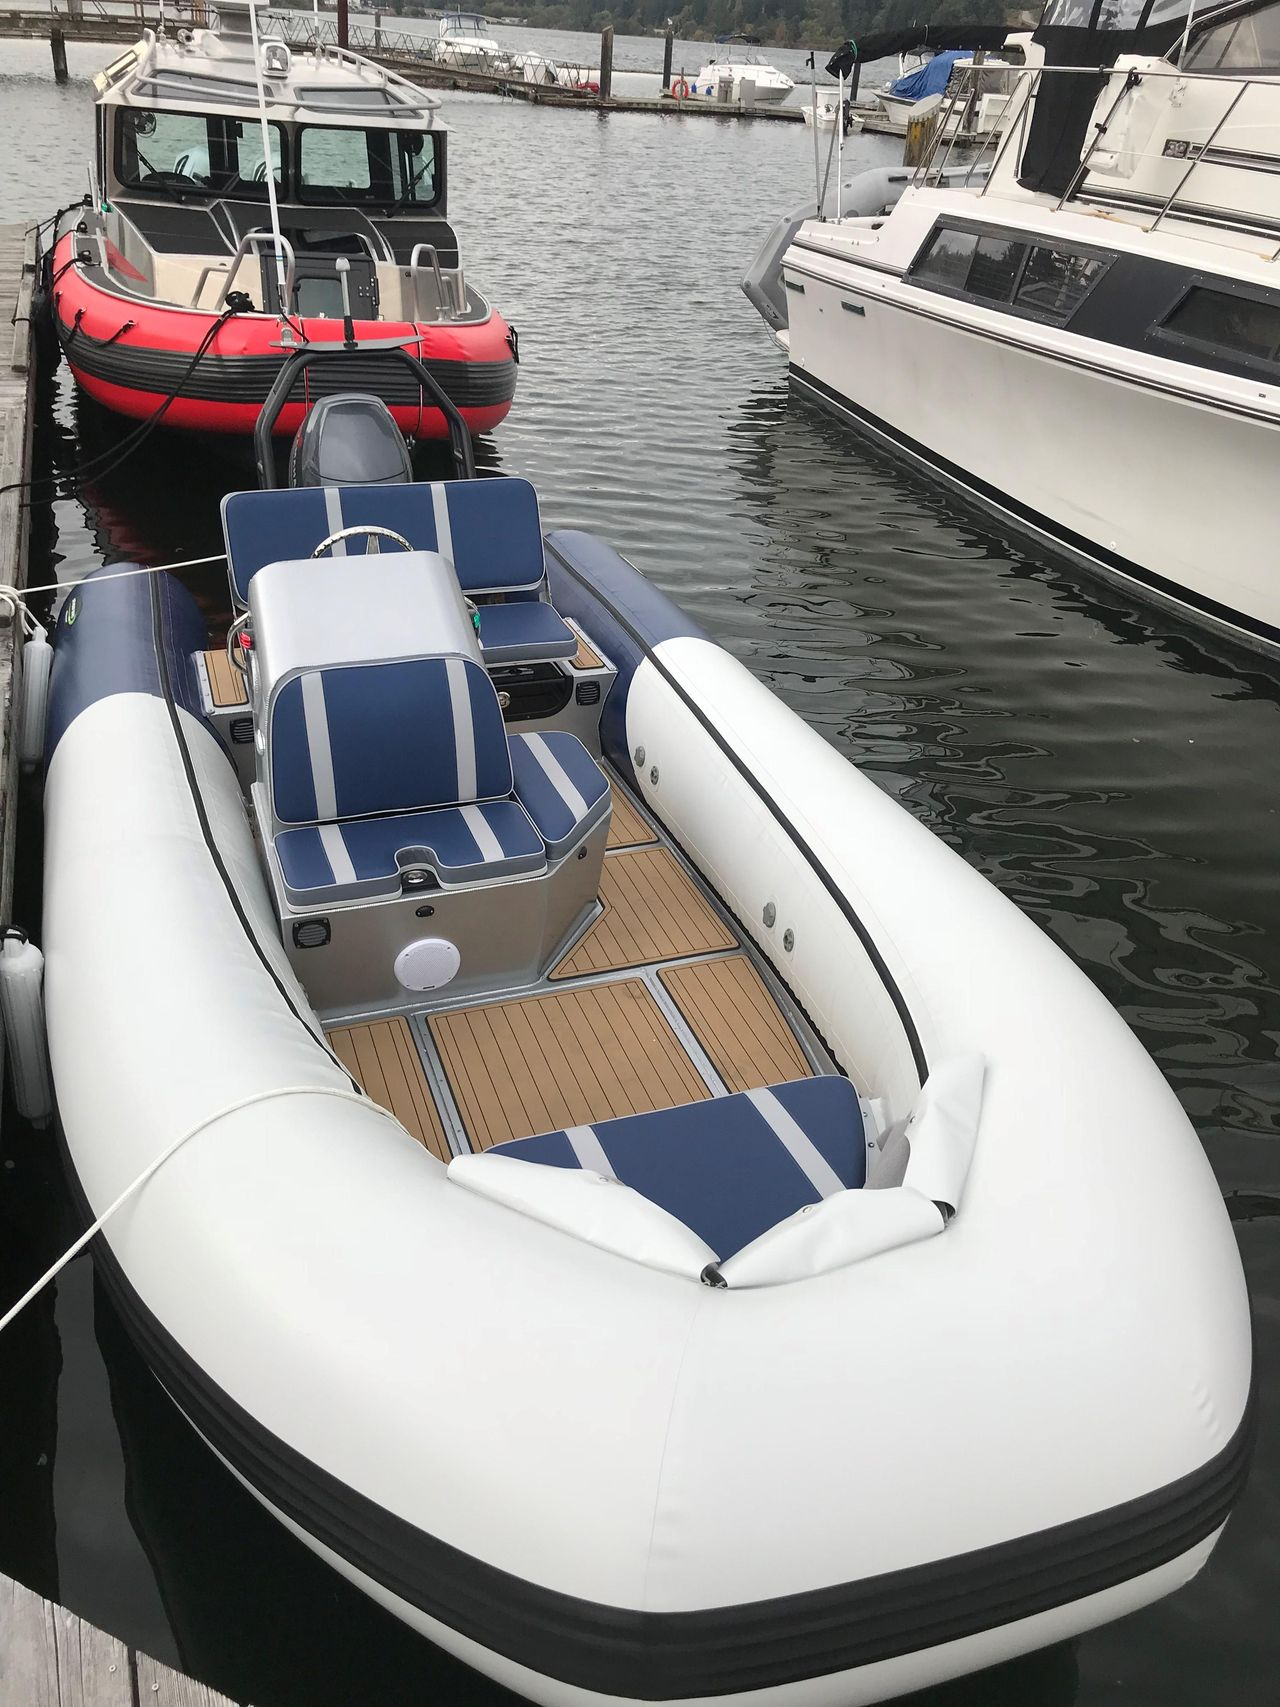 2018 New Life Proof 18' Tender Boat For Sale - $54,900